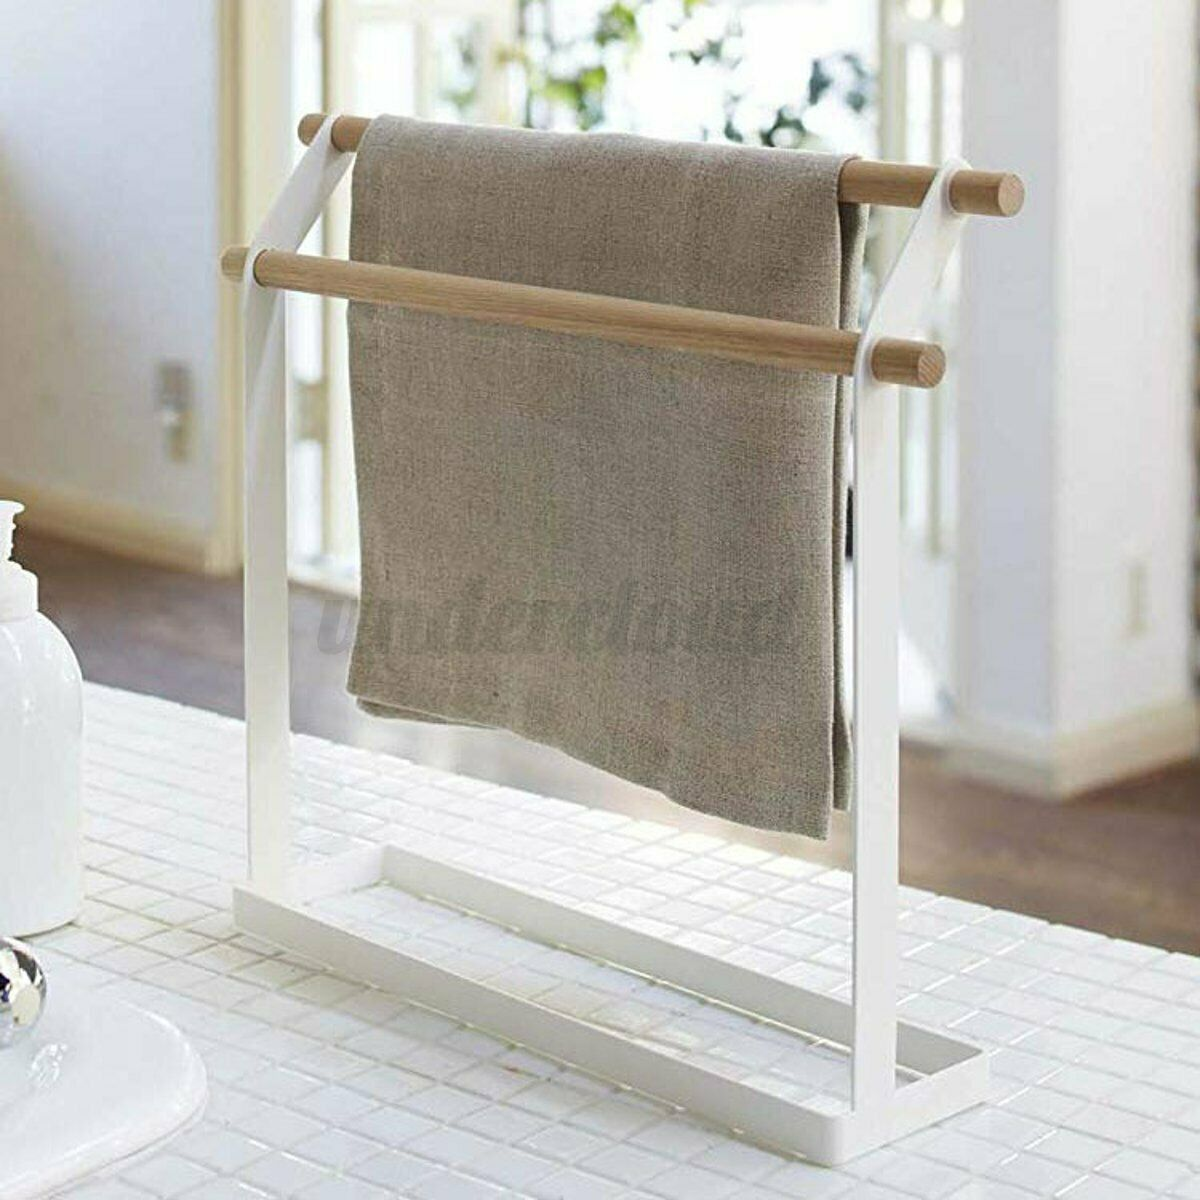 Picture of: T Shaped Towel Stand Standing Holder Countertop Bathroom Rack Double For Sale Online Ebay